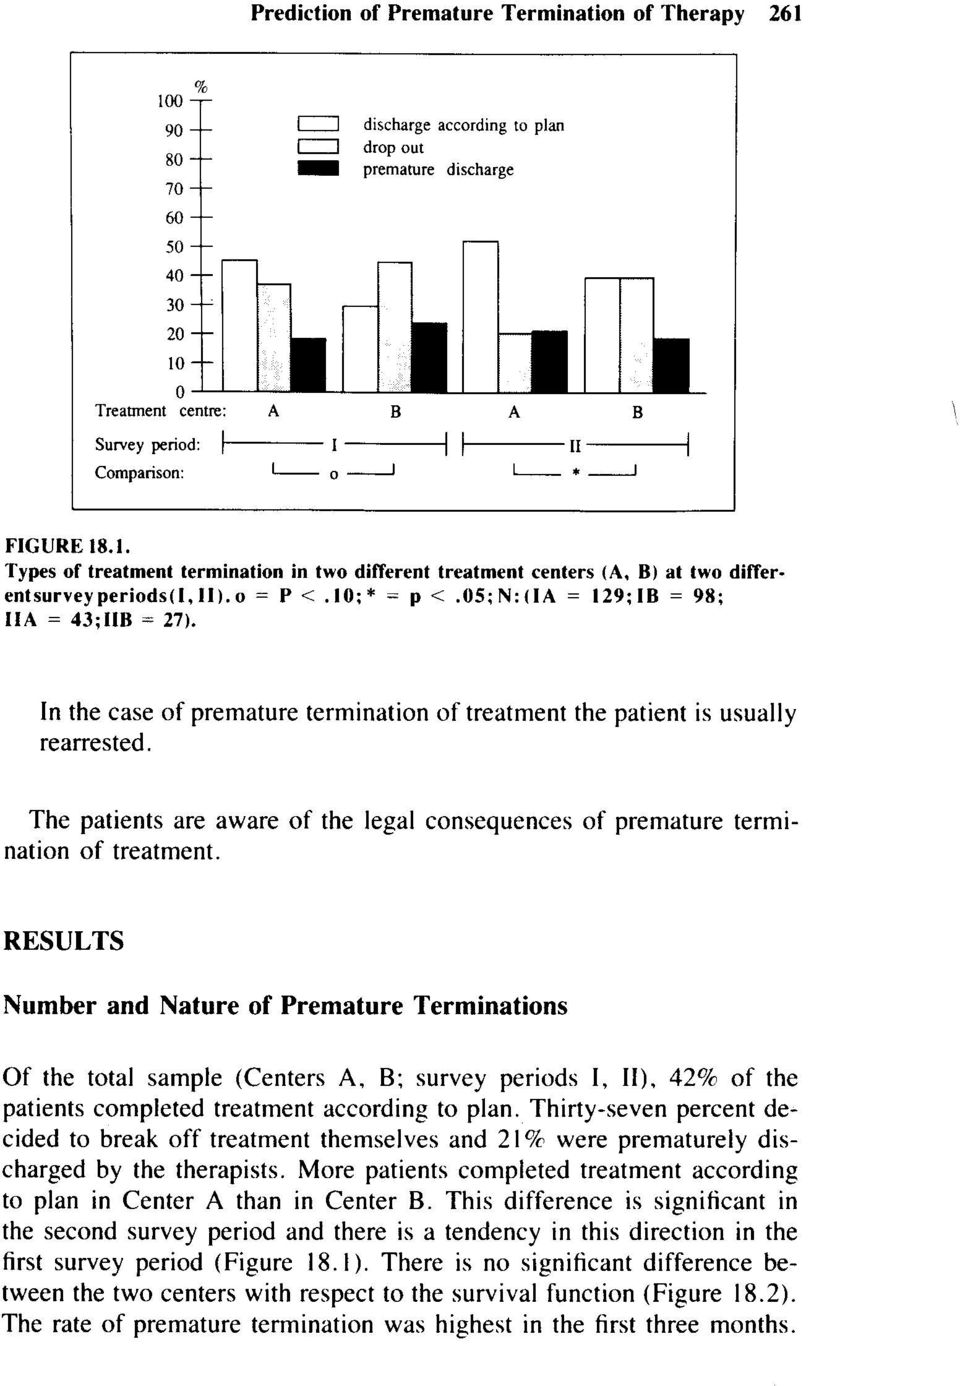 10;* = p<.05;n:(la = 129;IB = 98; HA = 43; IIB = 27). In the case of premature termination of treatment the patient is usually rearrested.